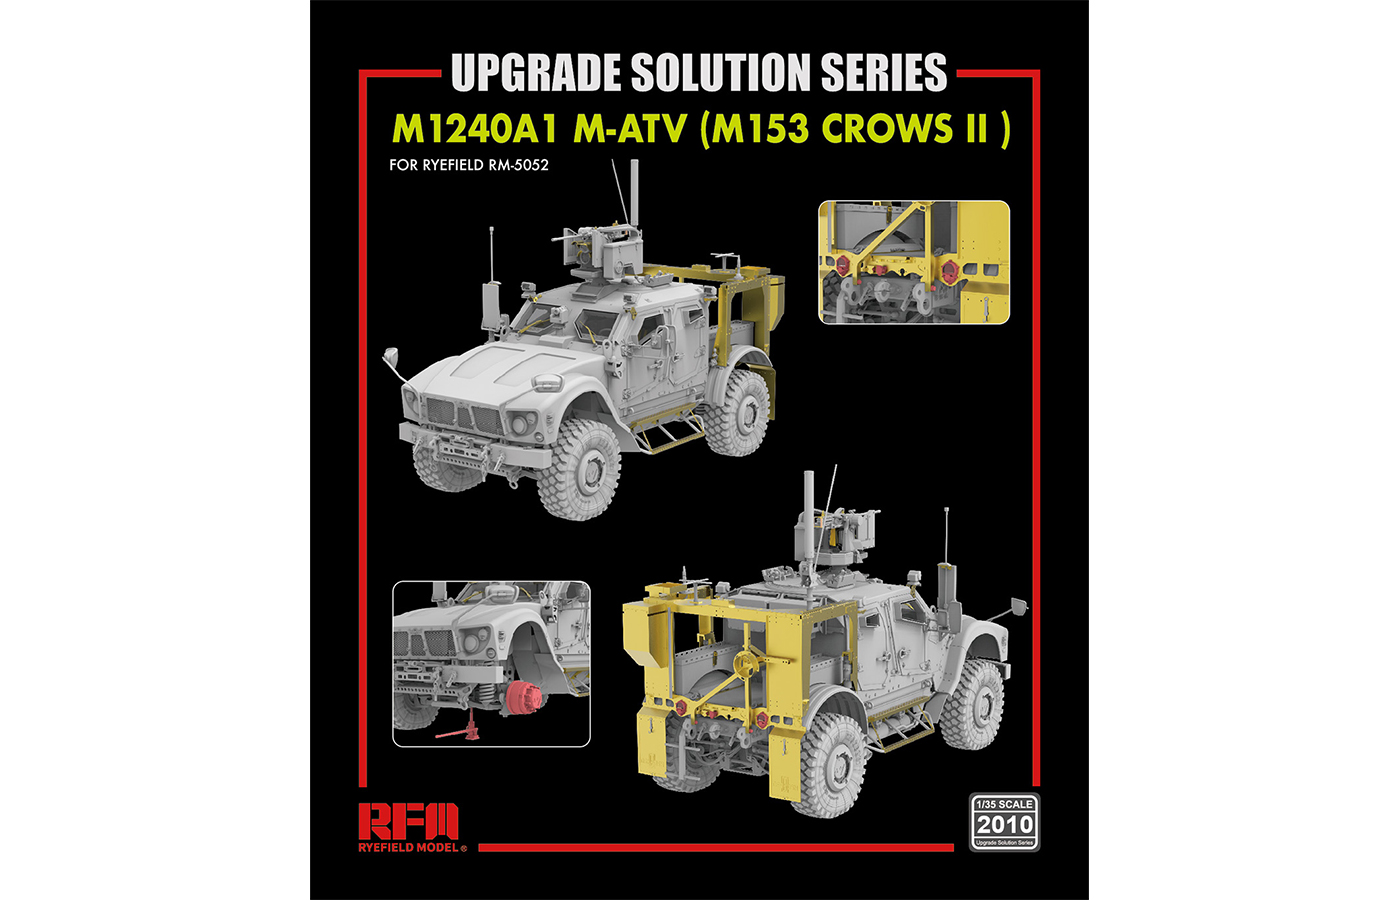 RM-5052 M1240A1 M-ATV (M153 CROWS II)UPGRADE SOLUTION SERIES